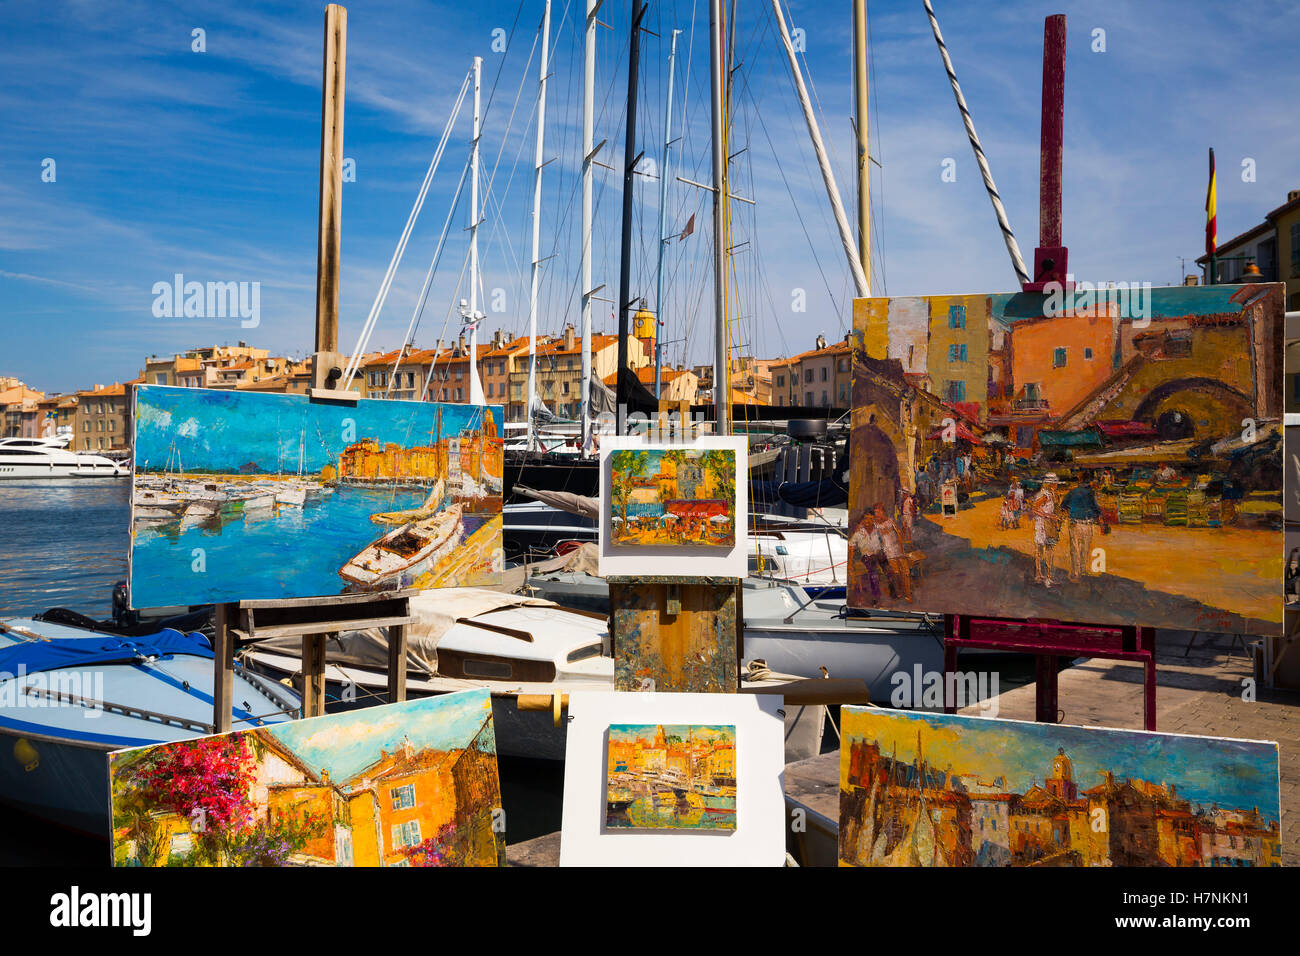 saint tropez painter stockfotos saint tropez painter bilder alamy. Black Bedroom Furniture Sets. Home Design Ideas